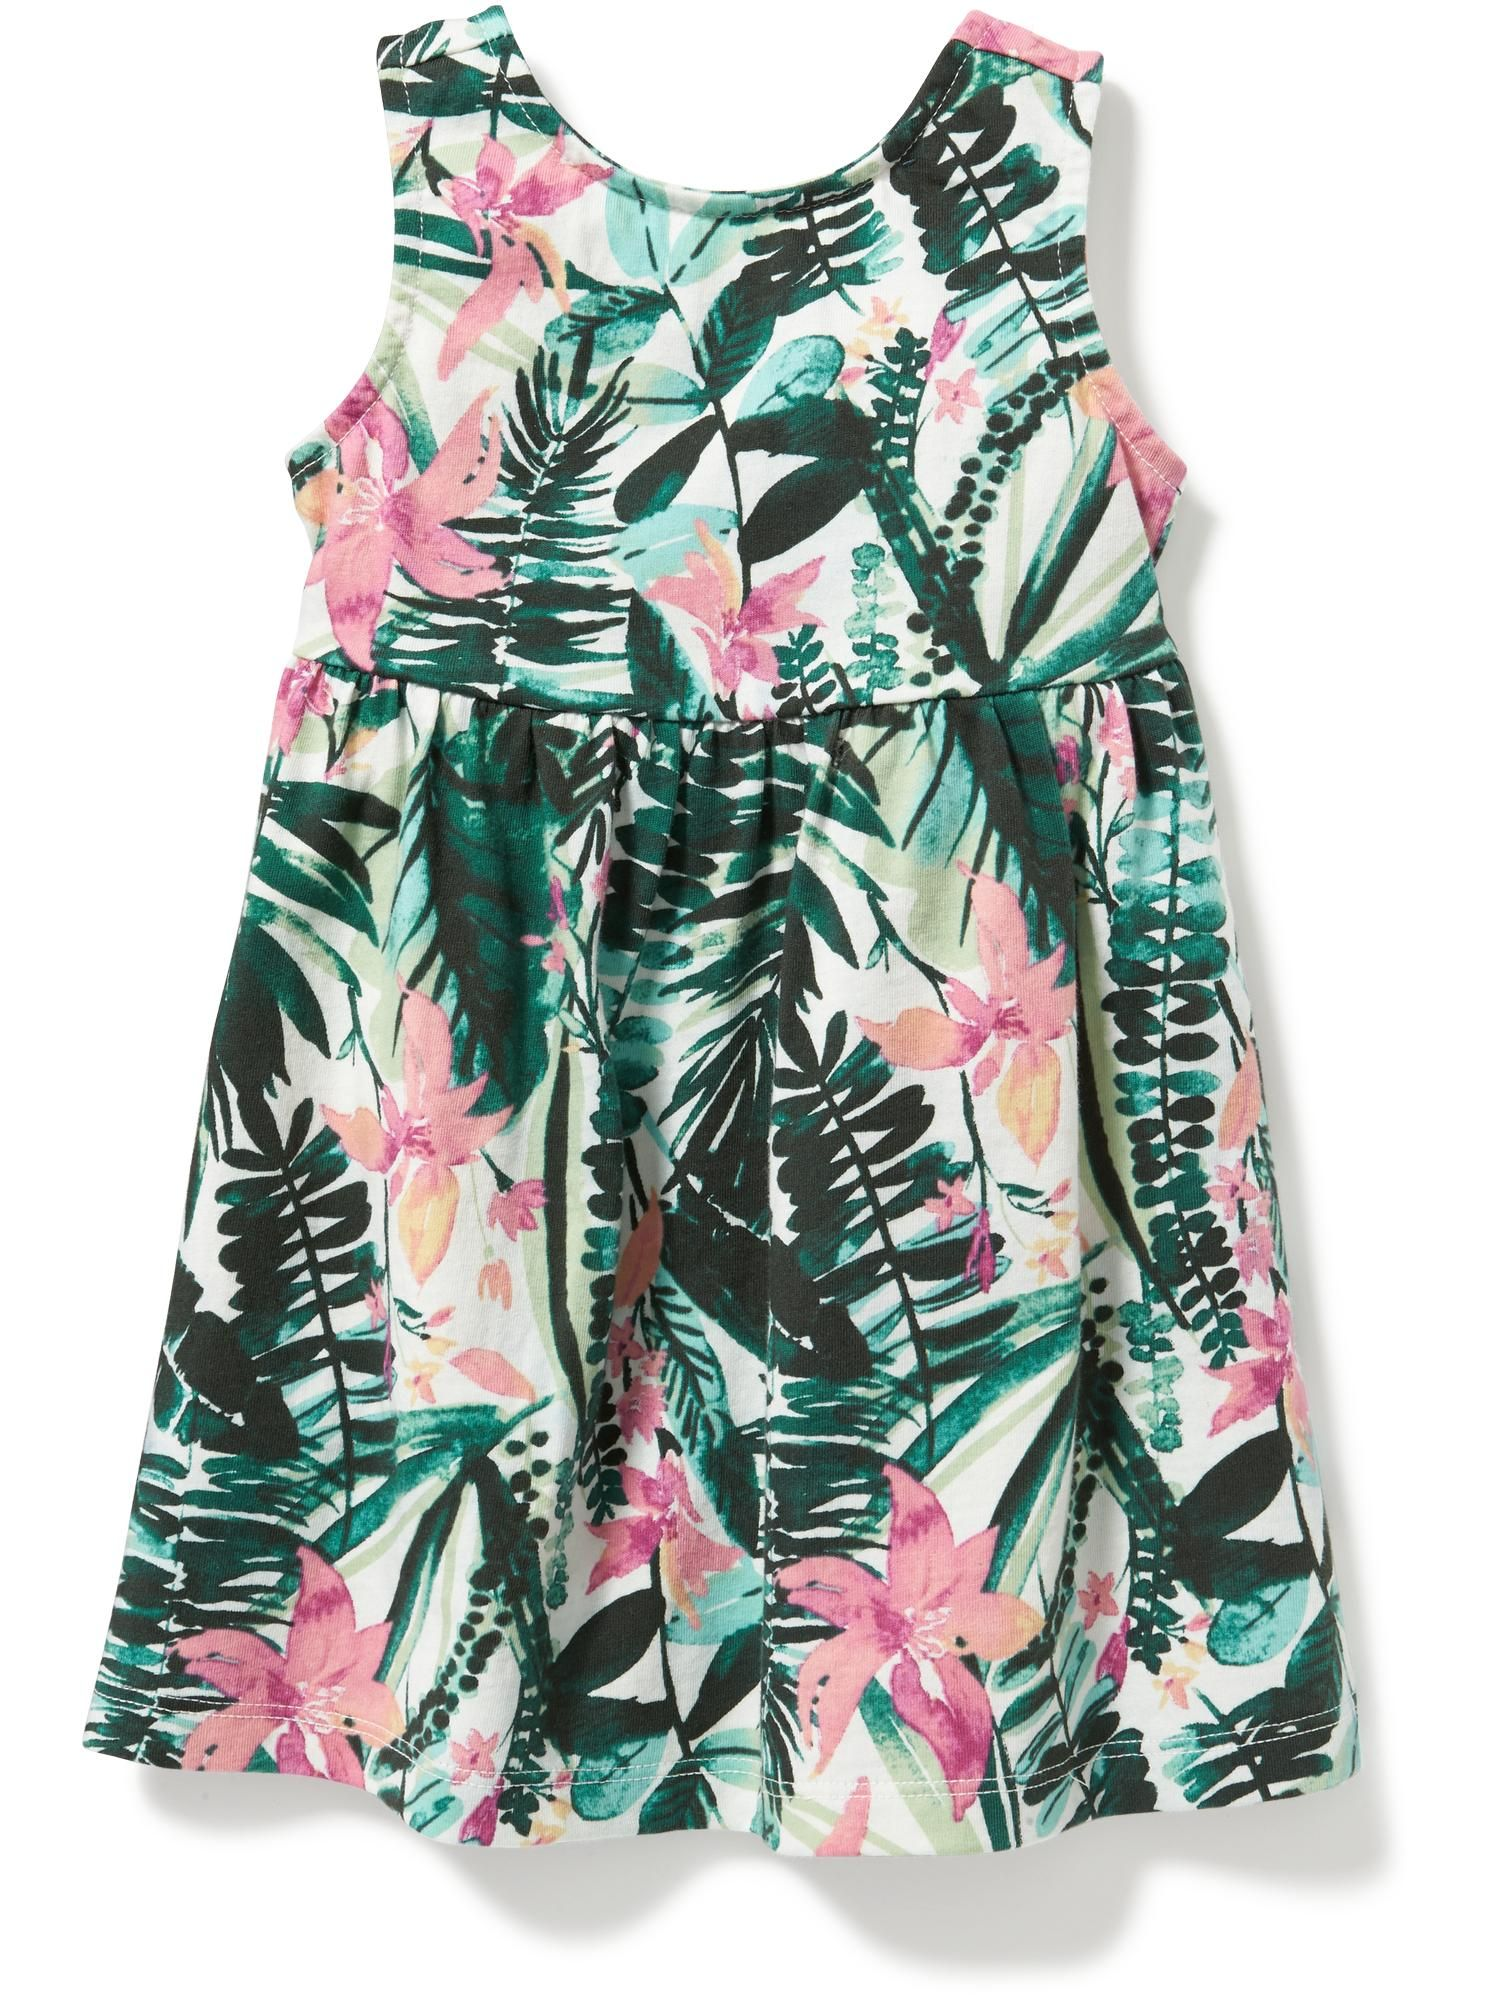 Old Navy tropical dress Perfect for Miss Muffet and Hush